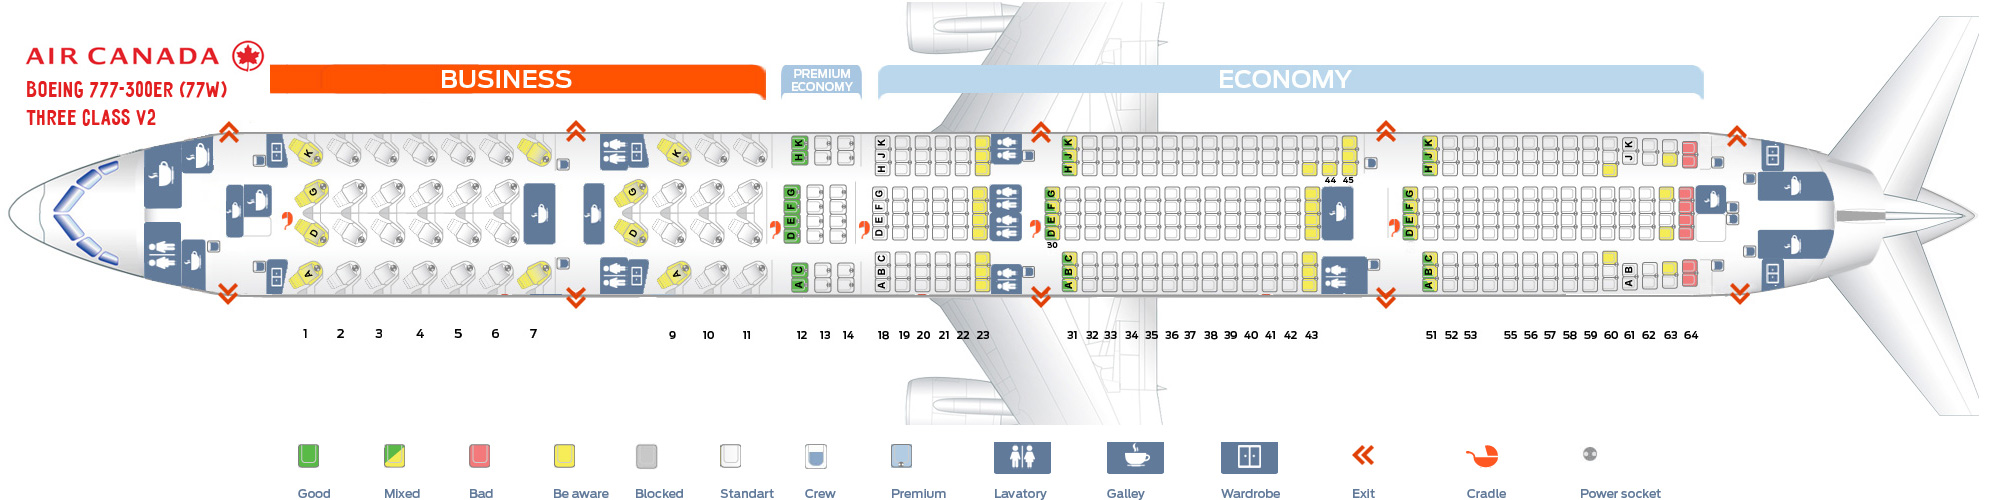 Seat Map And Seating Chart Boeing 777 300er Air Canada 77w Three Cl V1